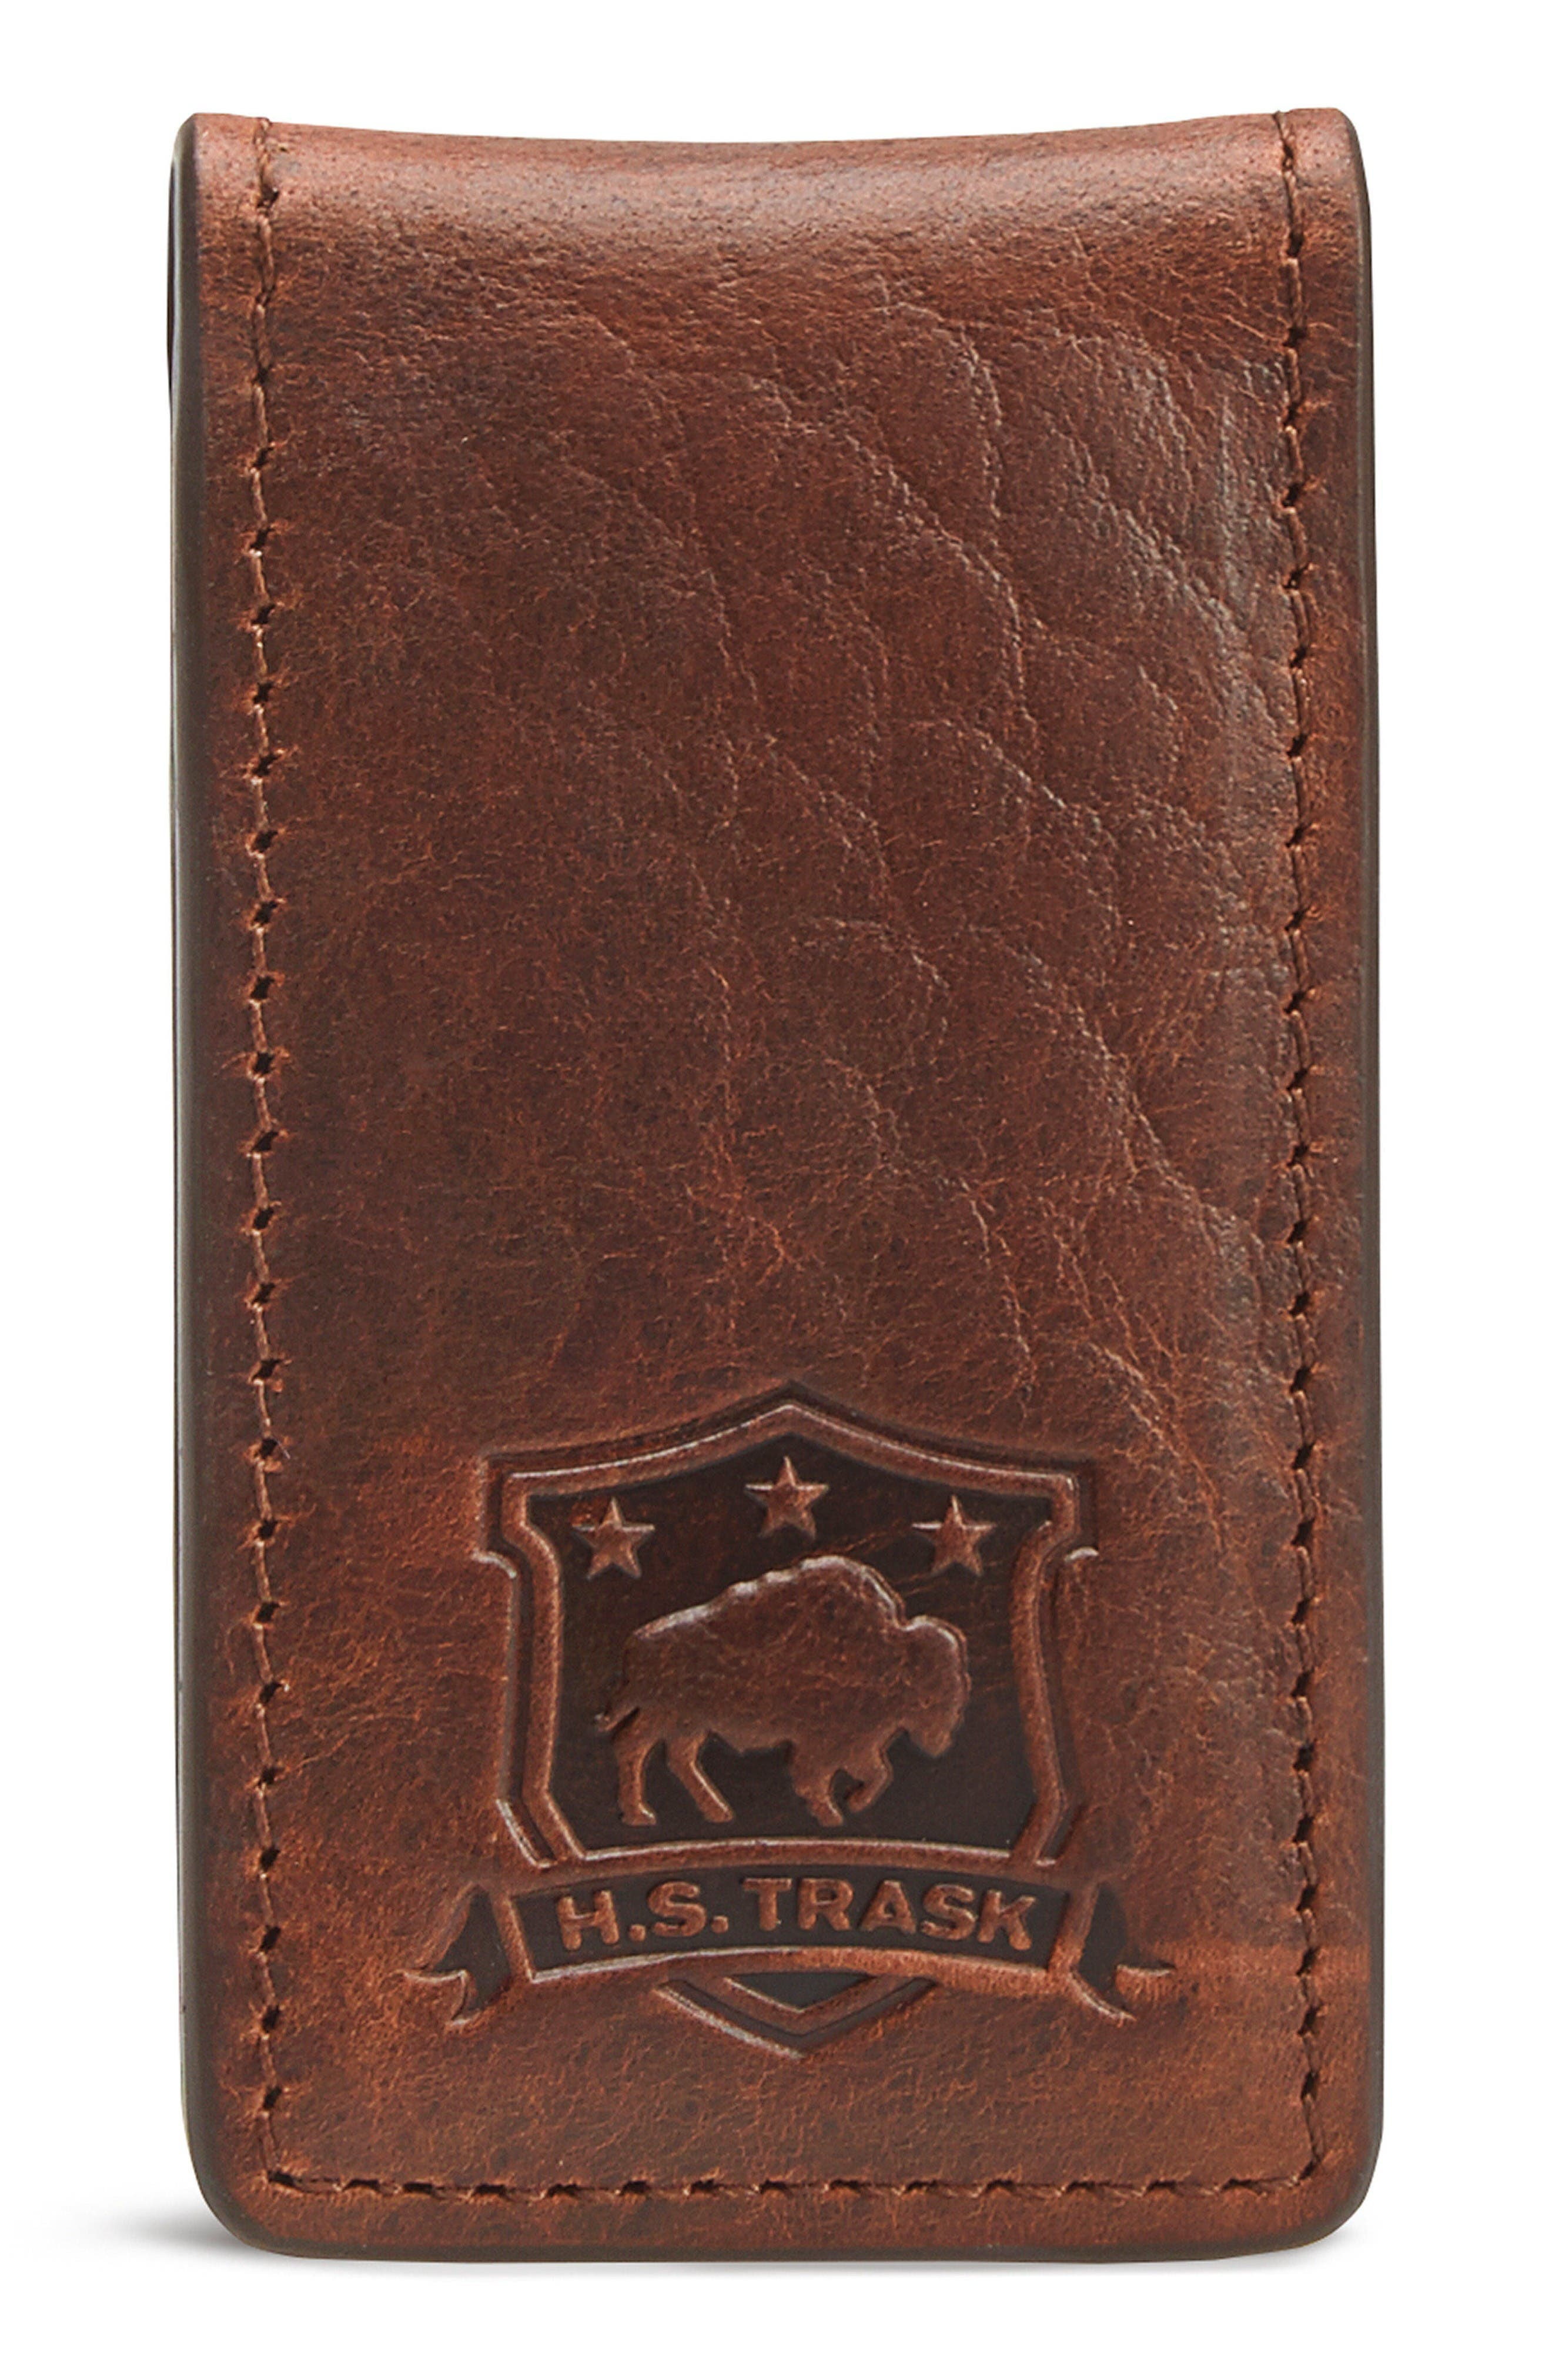 TRASK Leather Money Clip